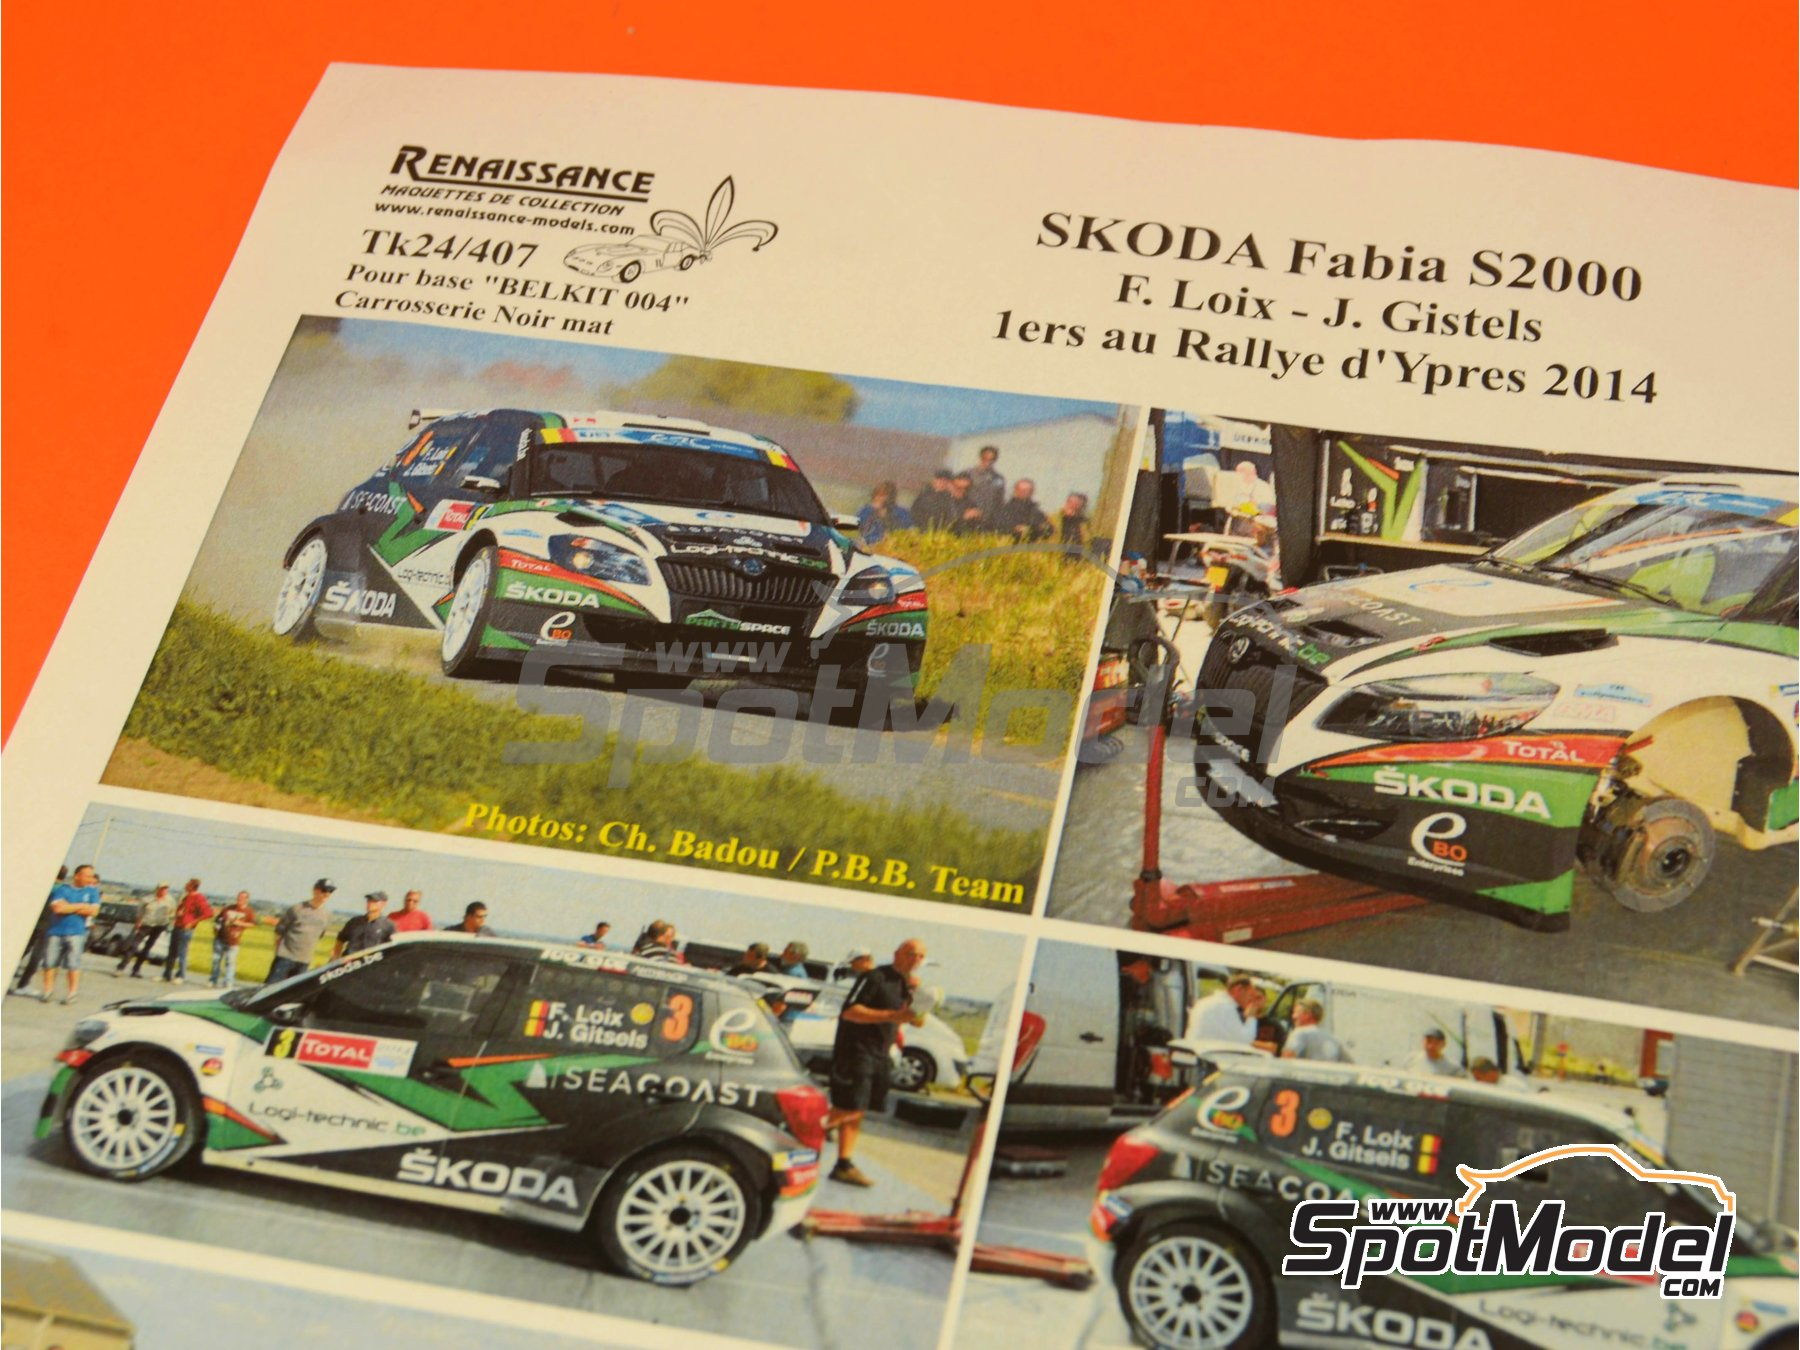 Image 1: Skoda Fabia S2000 Seacoast - Ypres Rally 2014   Marking / livery in 1/24 scale manufactured by Renaissance Models (ref.TK24-407)